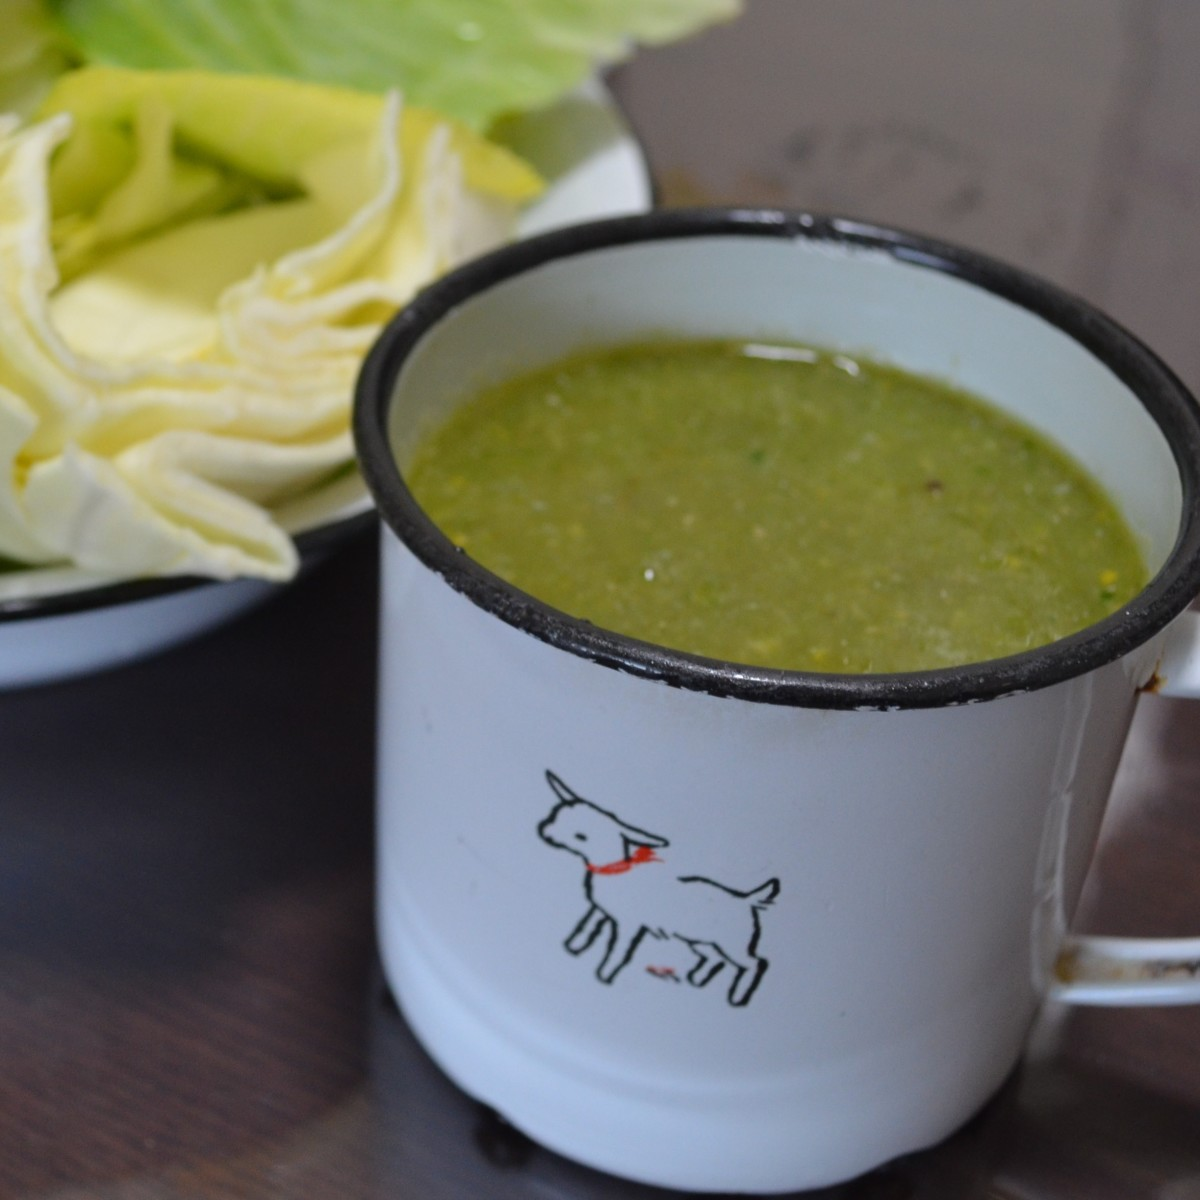 Tasty, Easy, and Healthy: My Cabbage Smoothie Recipe